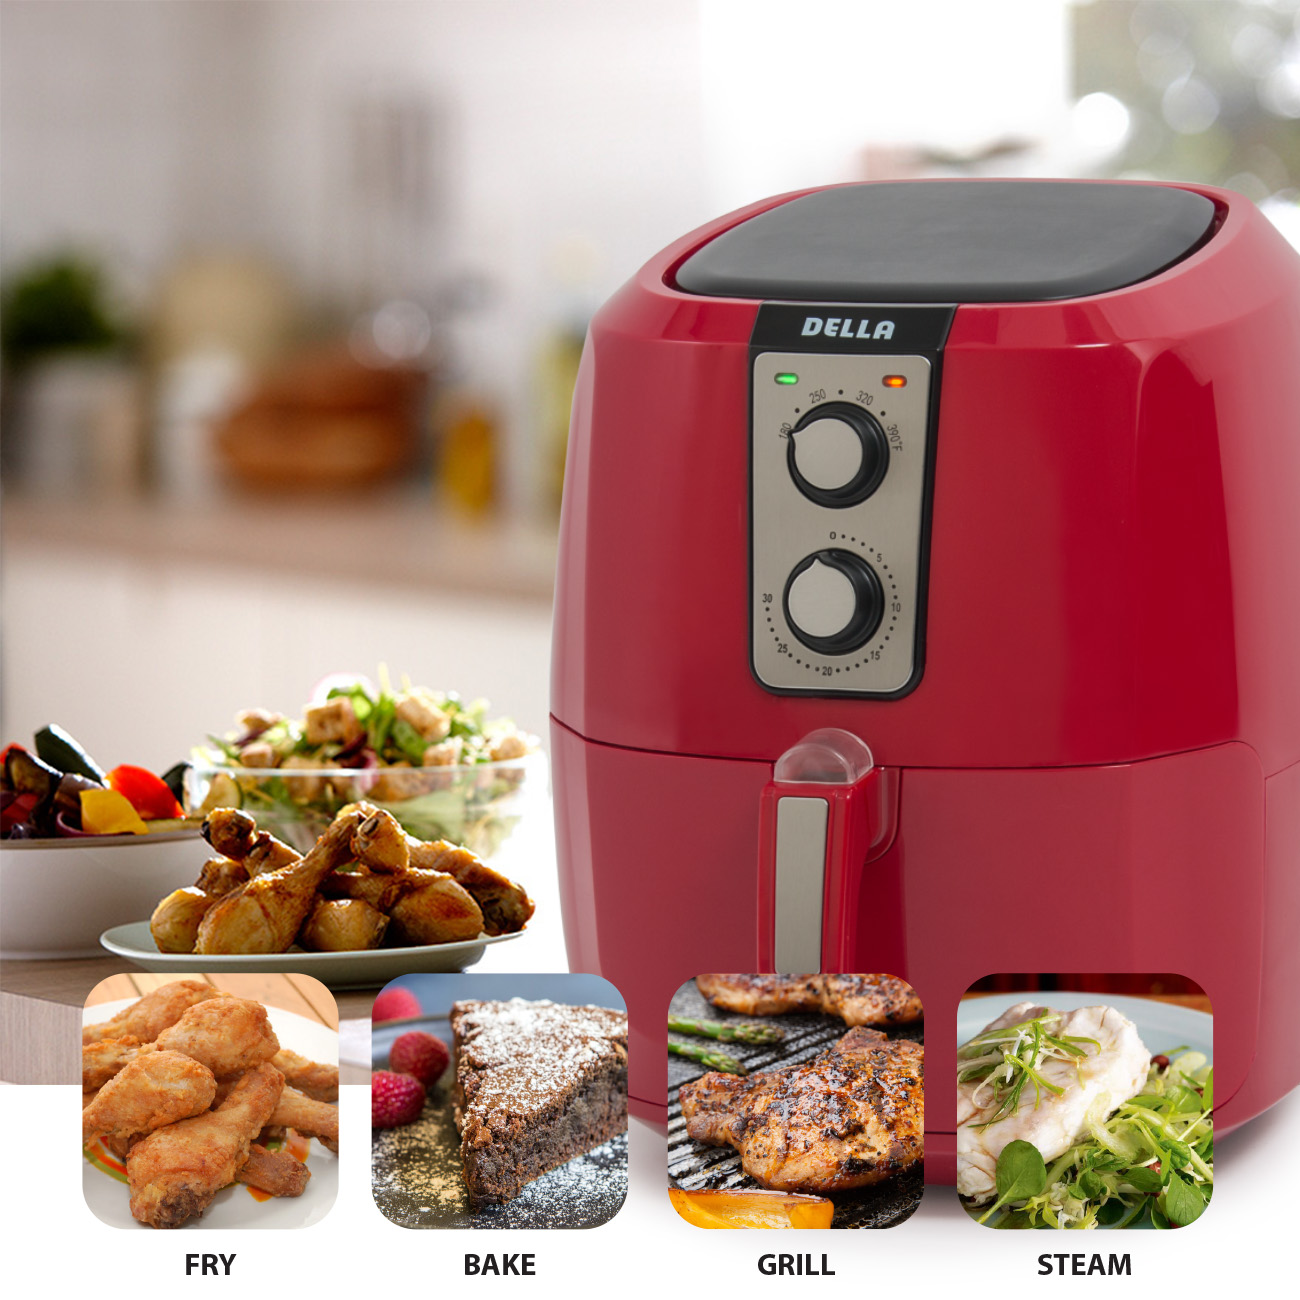 Della 5.8 QT Electric Multipurpose Classic Rapid Air Fryer Dual Dial Temperature and Timer Controls, 1800W, White